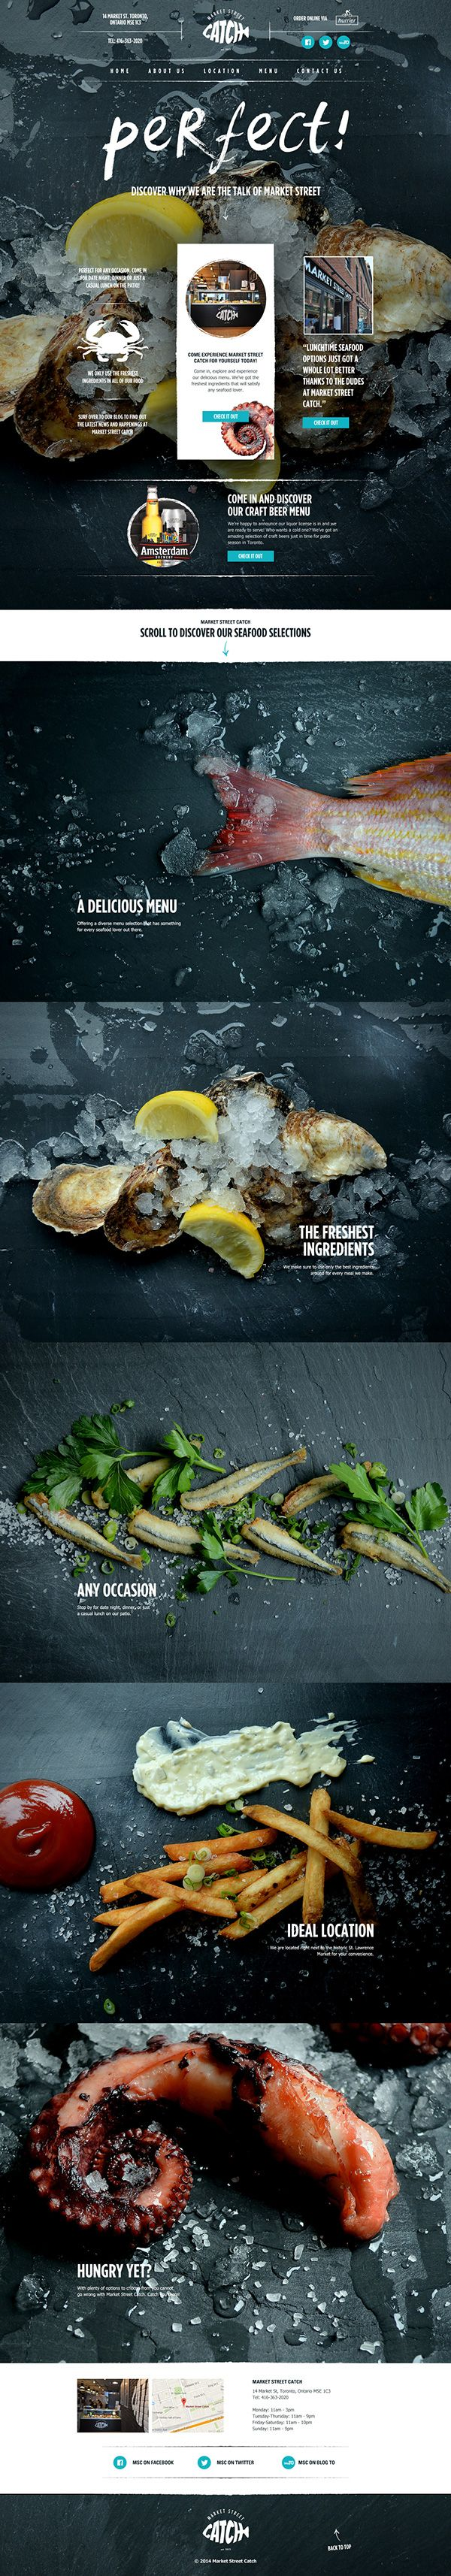 Website for Market Street Catch, a seafood restaurant in Toronto, Ontario.